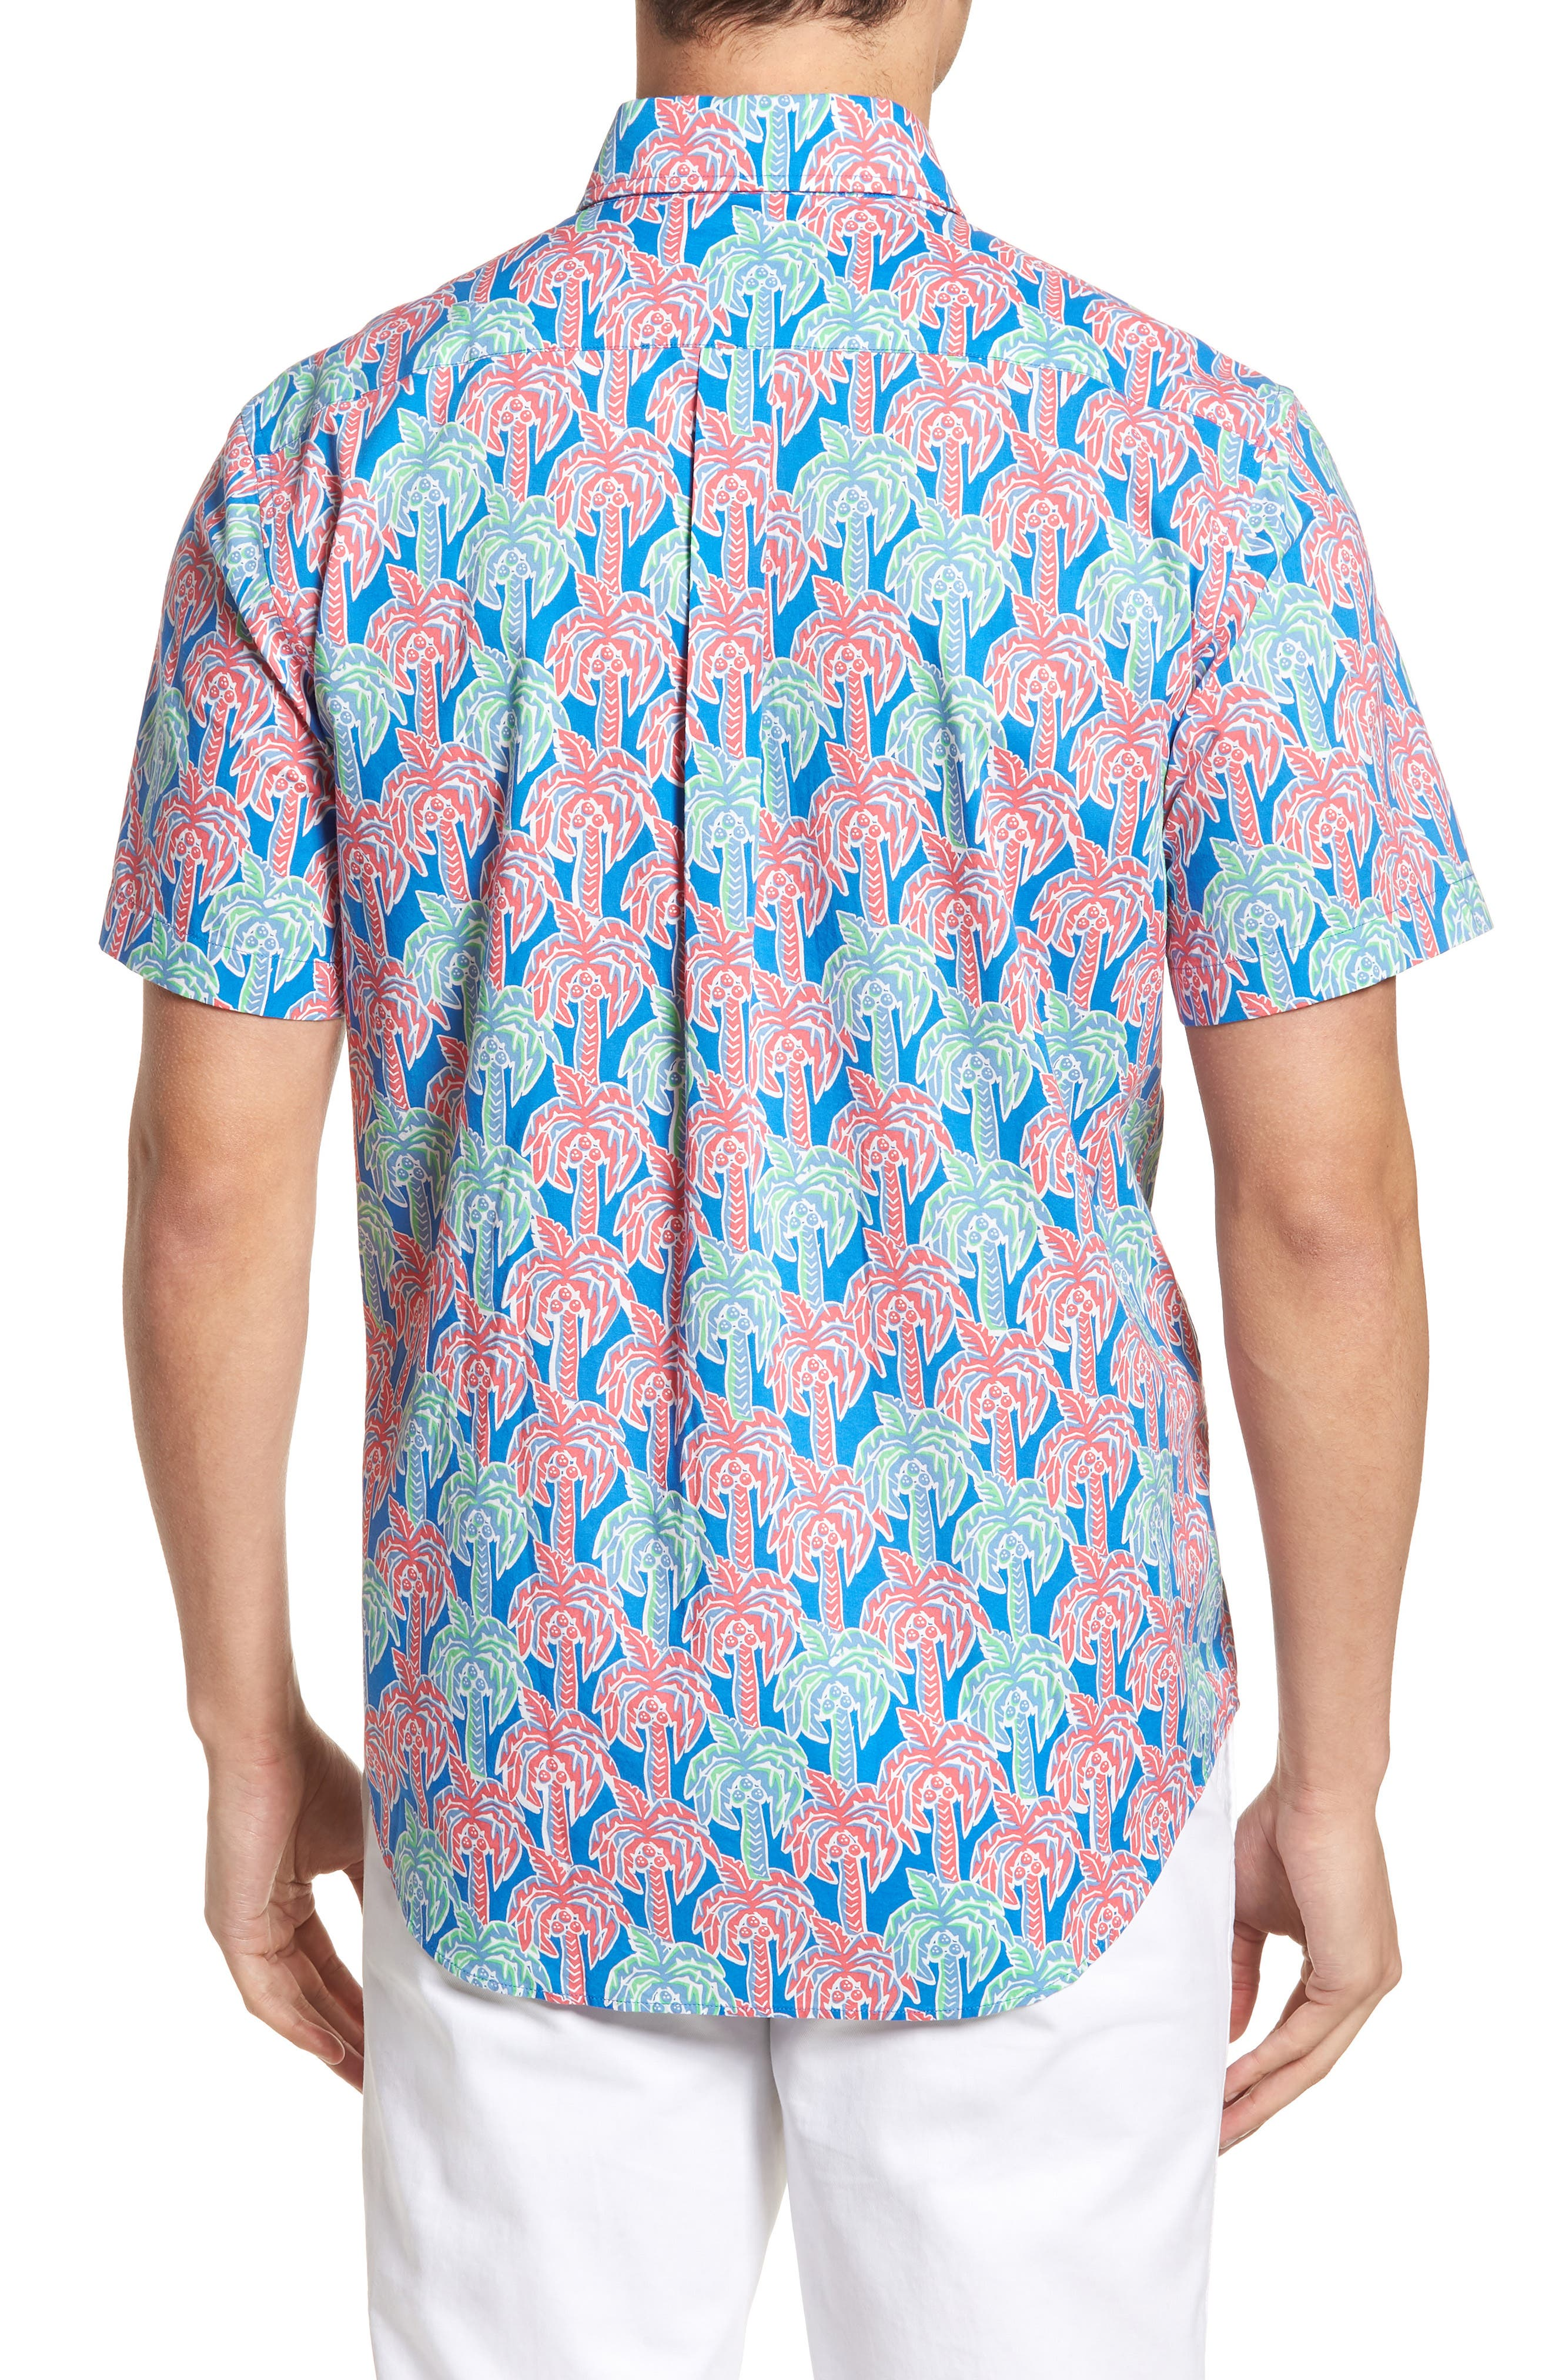 Murray Classic Fit Print Short Sleeve Sport Shirt,                             Alternate thumbnail 2, color,                             400